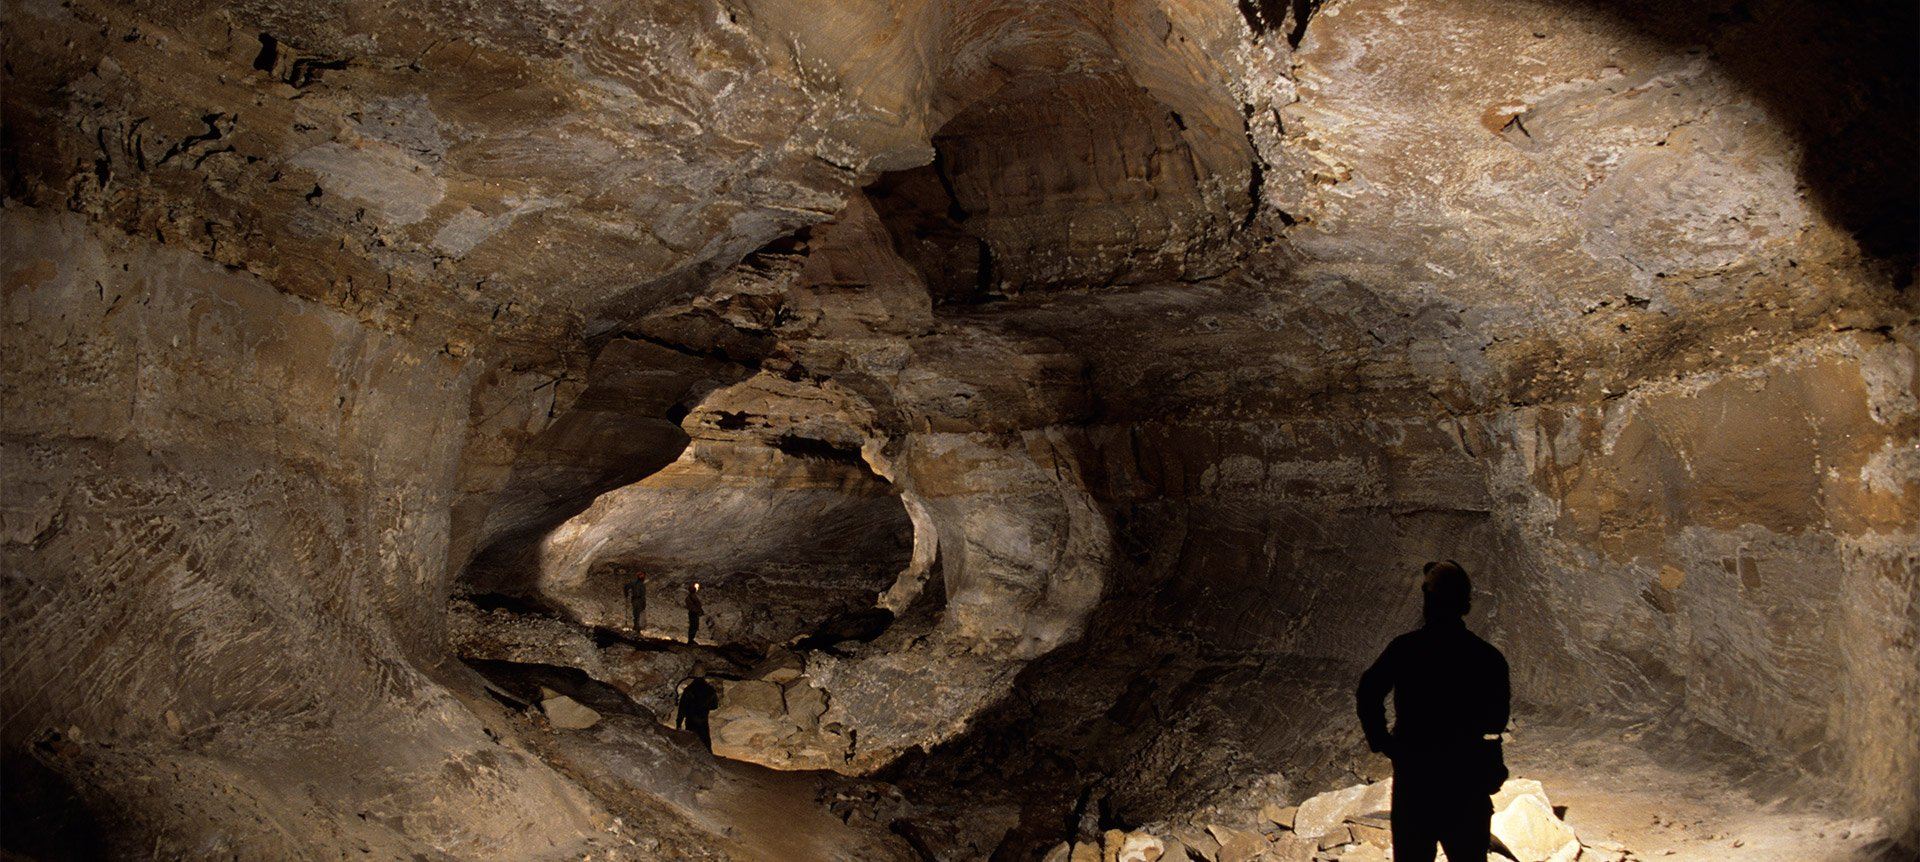 Caves & Photogrammetry – Master Photographer Stephen Alvarez